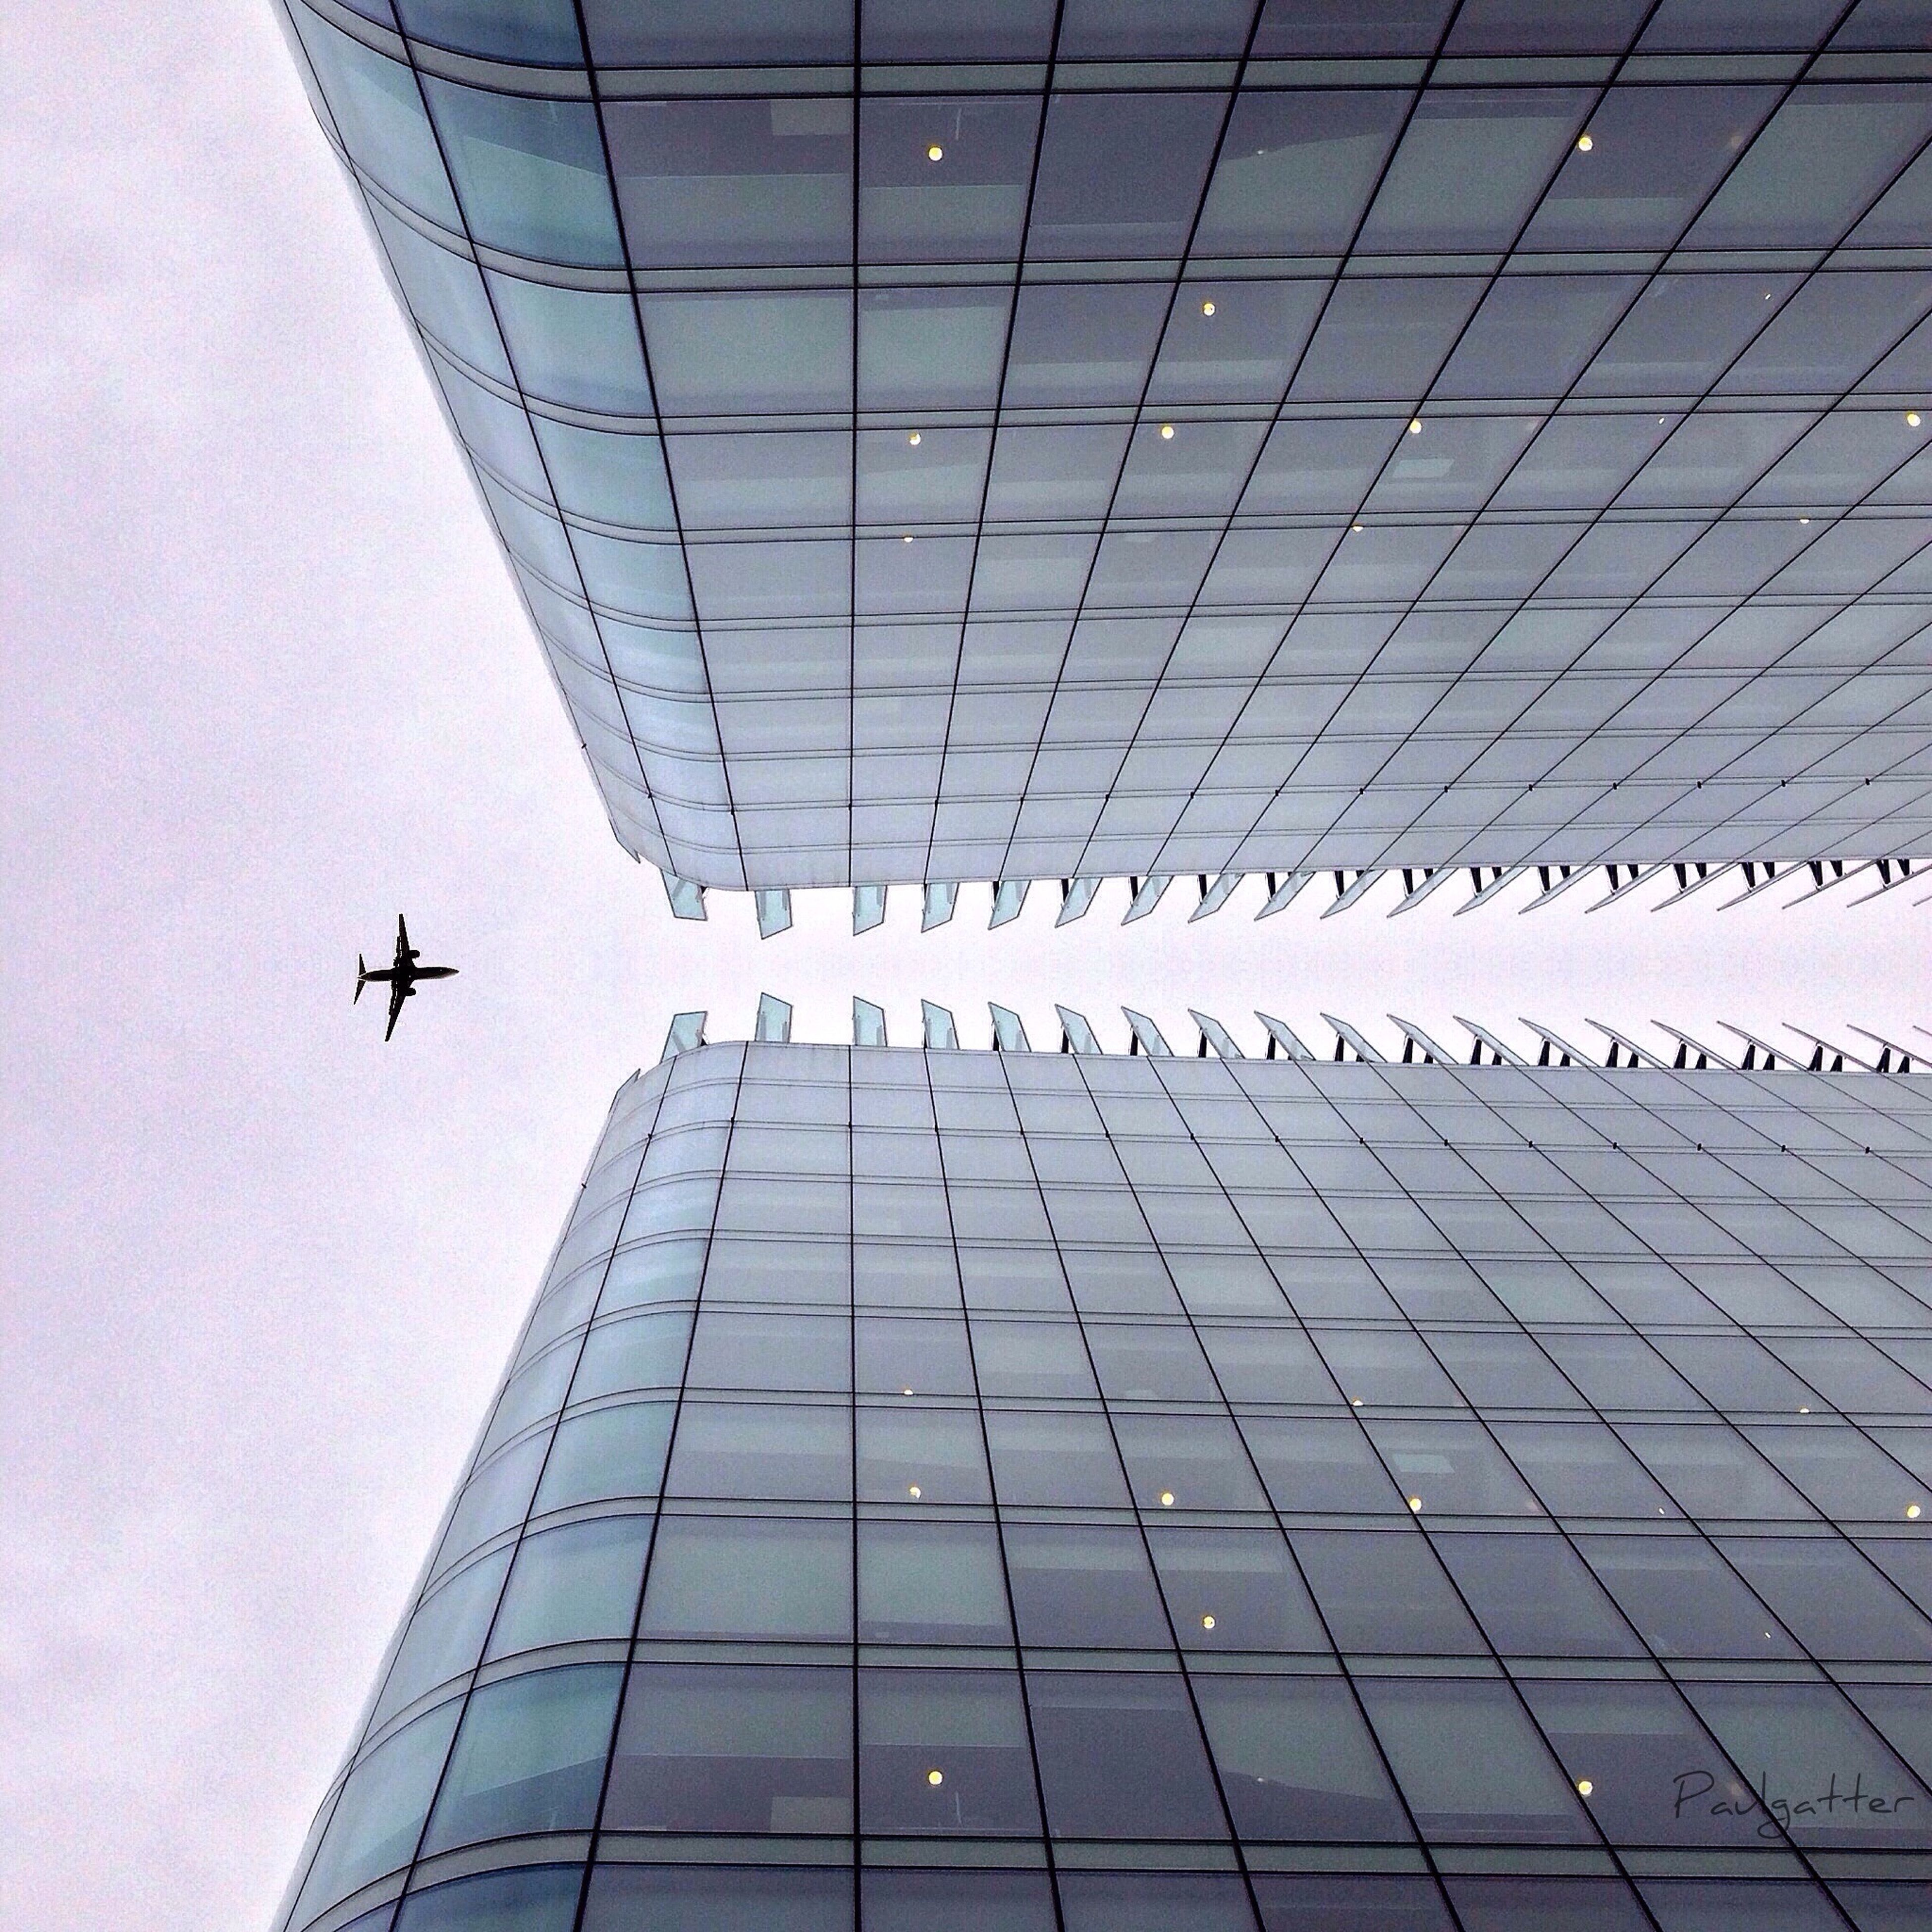 architecture, transportation, built structure, low angle view, modern, airplane, flying, mode of transport, travel, air vehicle, building exterior, airport, city, sky, day, on the move, public transportation, office building, tall - high, outdoors